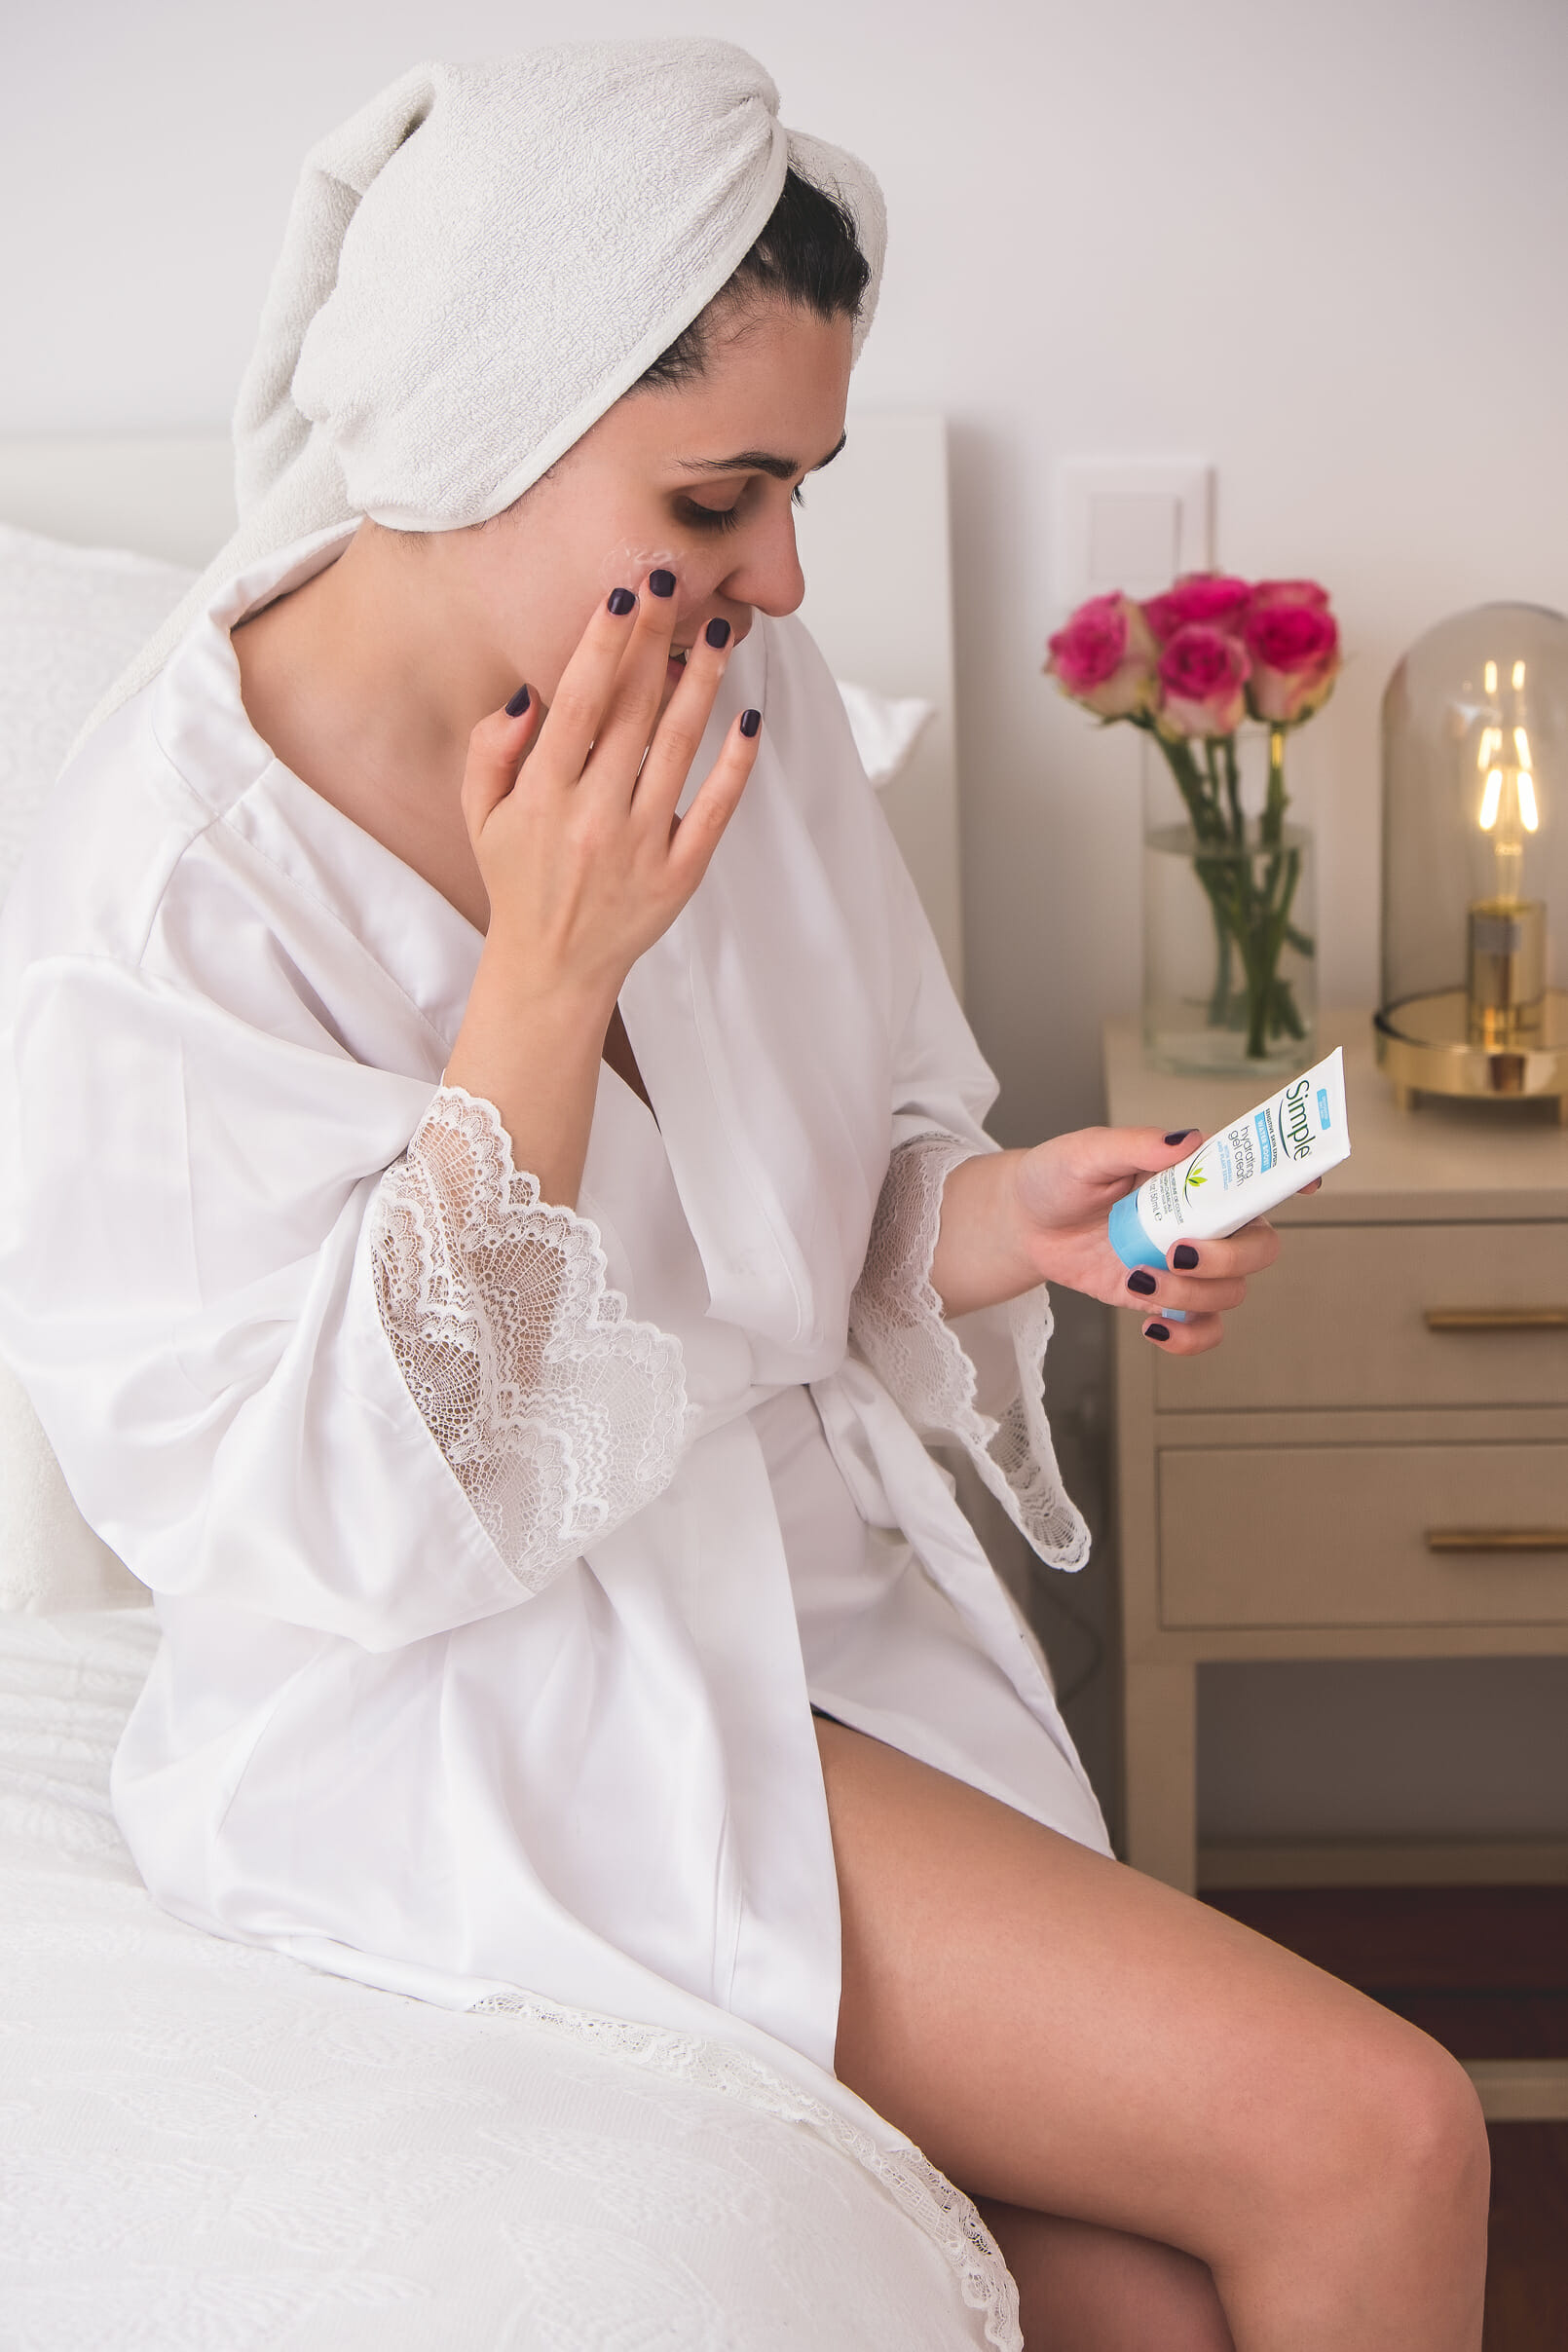 Le Fashionaire blogger catarine martins white satin lace primark robe face moisturizing cream simple pink roses 1323 EN blogger catarine martins white satin lace primark robe face moisturizing cream simple pink roses 1323 EN